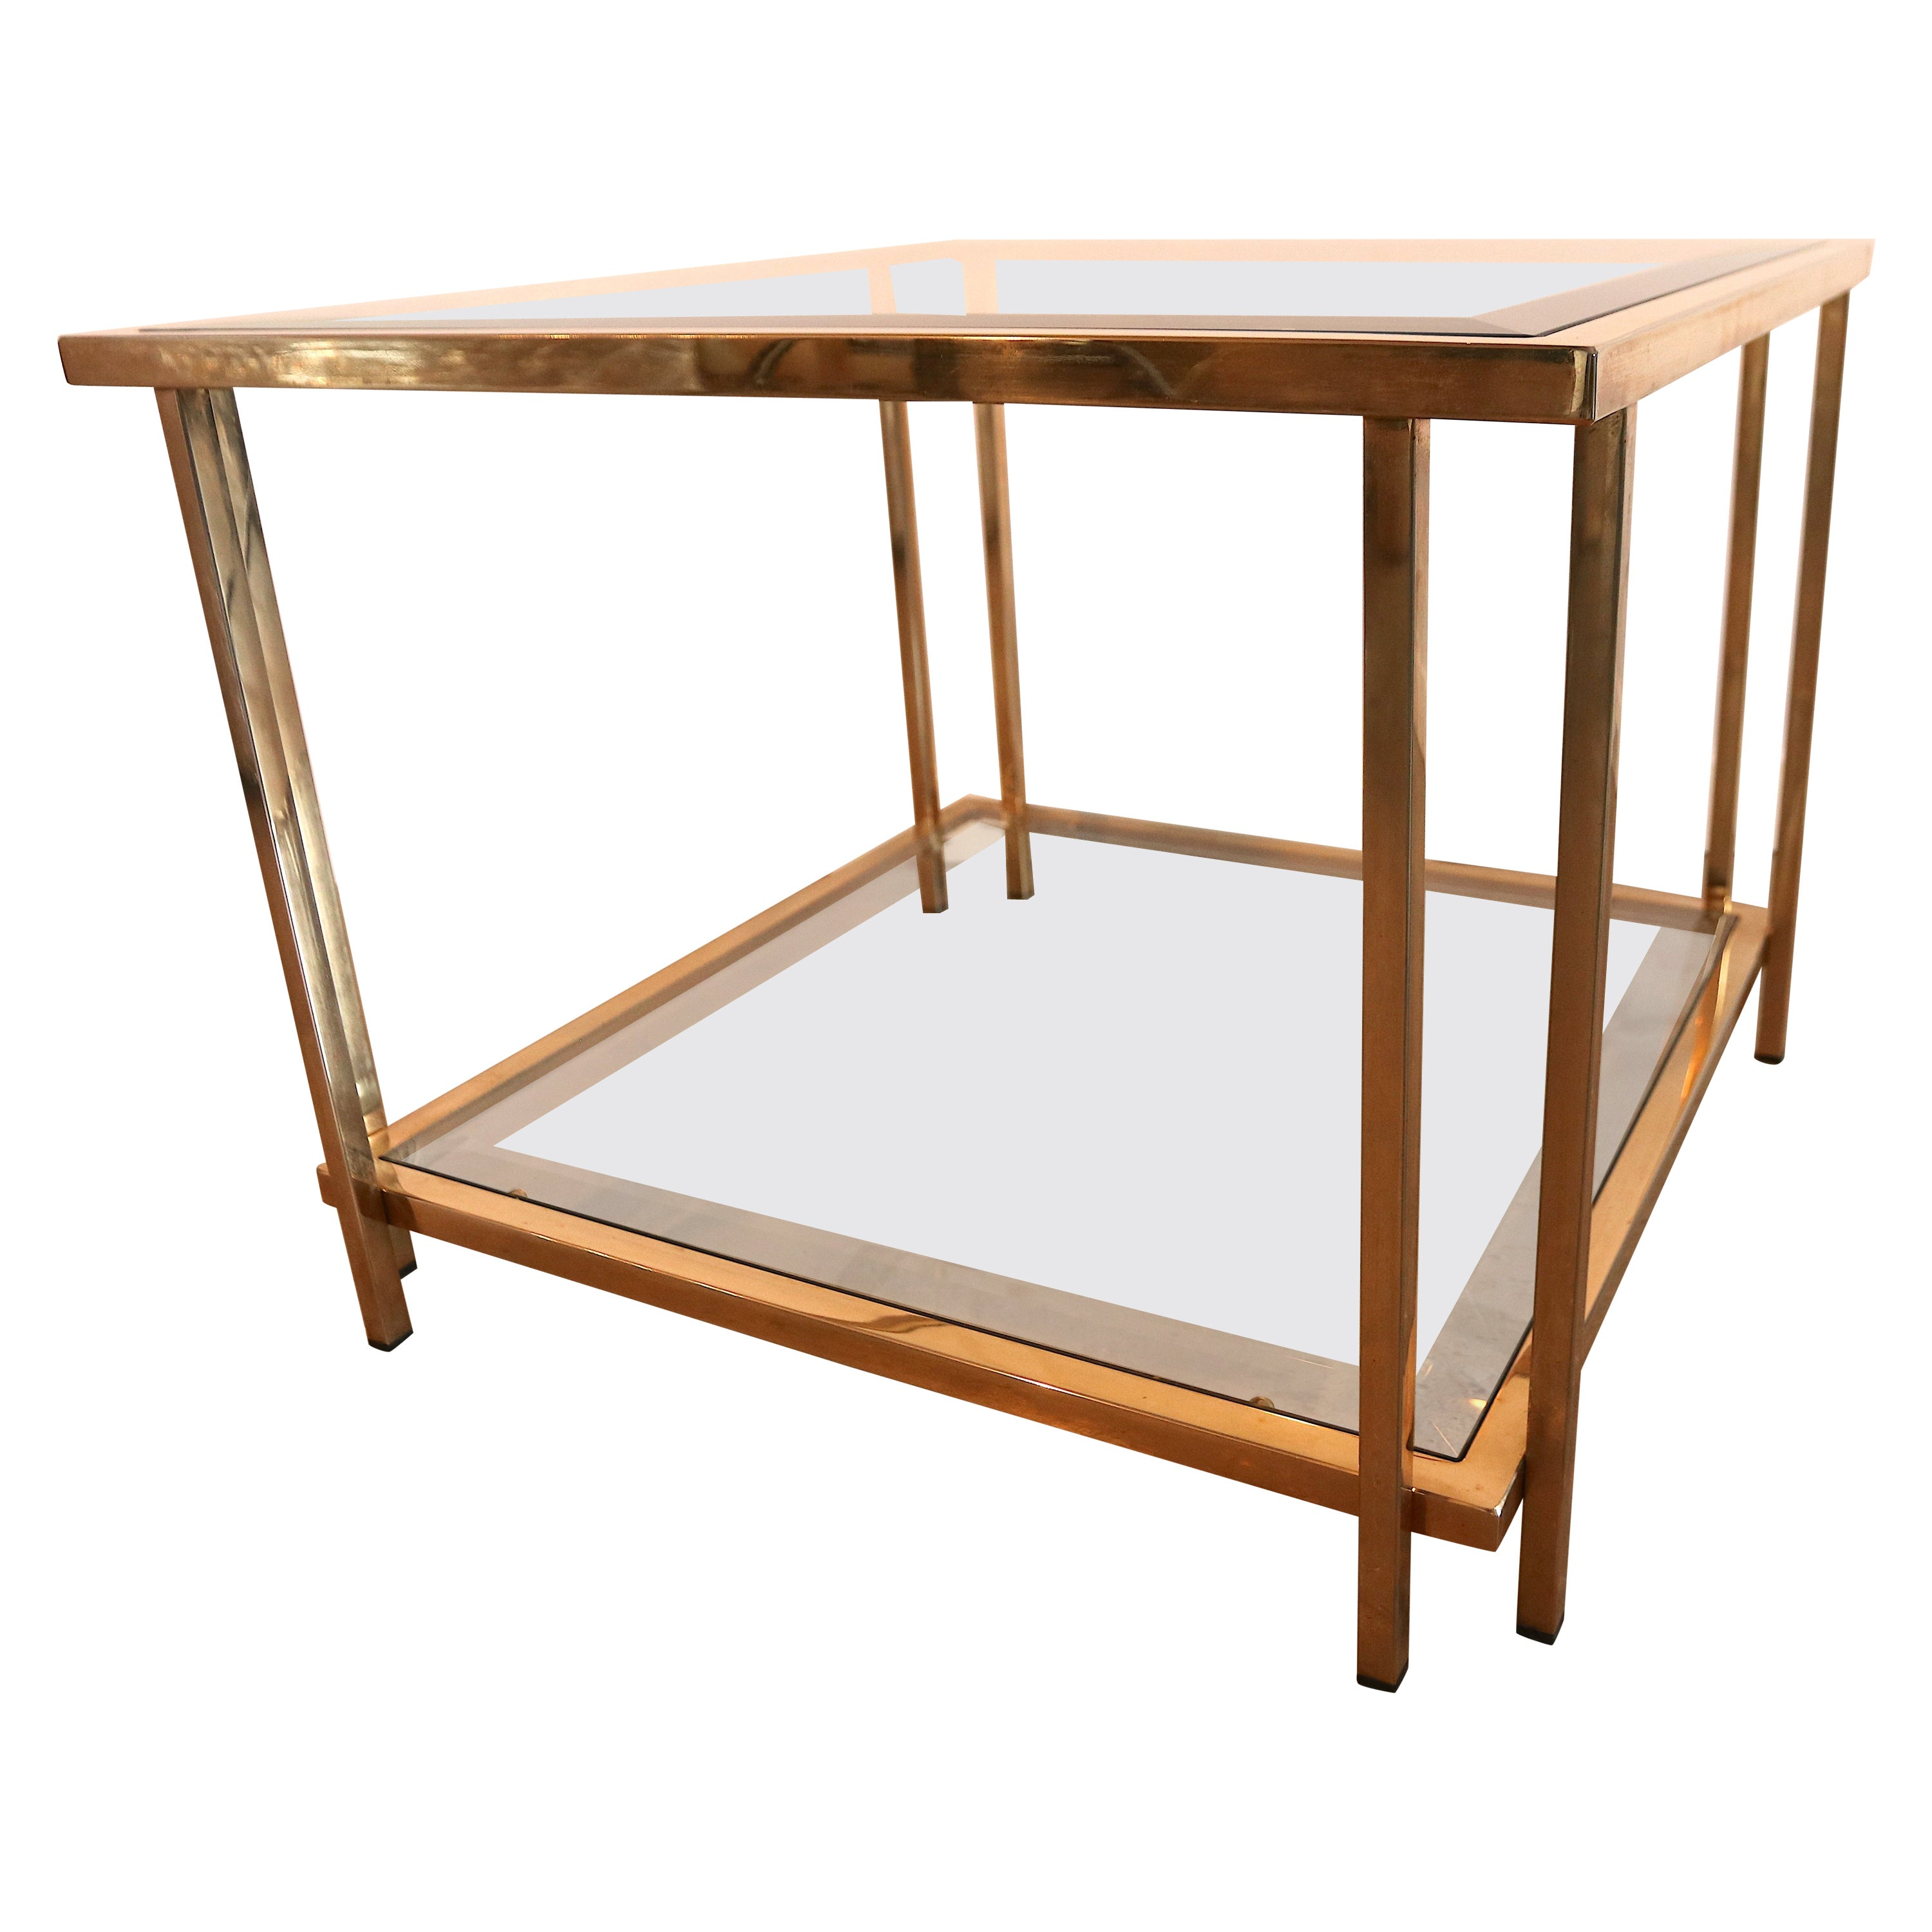 Romeo Rega Style Gold Plated 2-Tier Glass Coffee or Cocktail Table